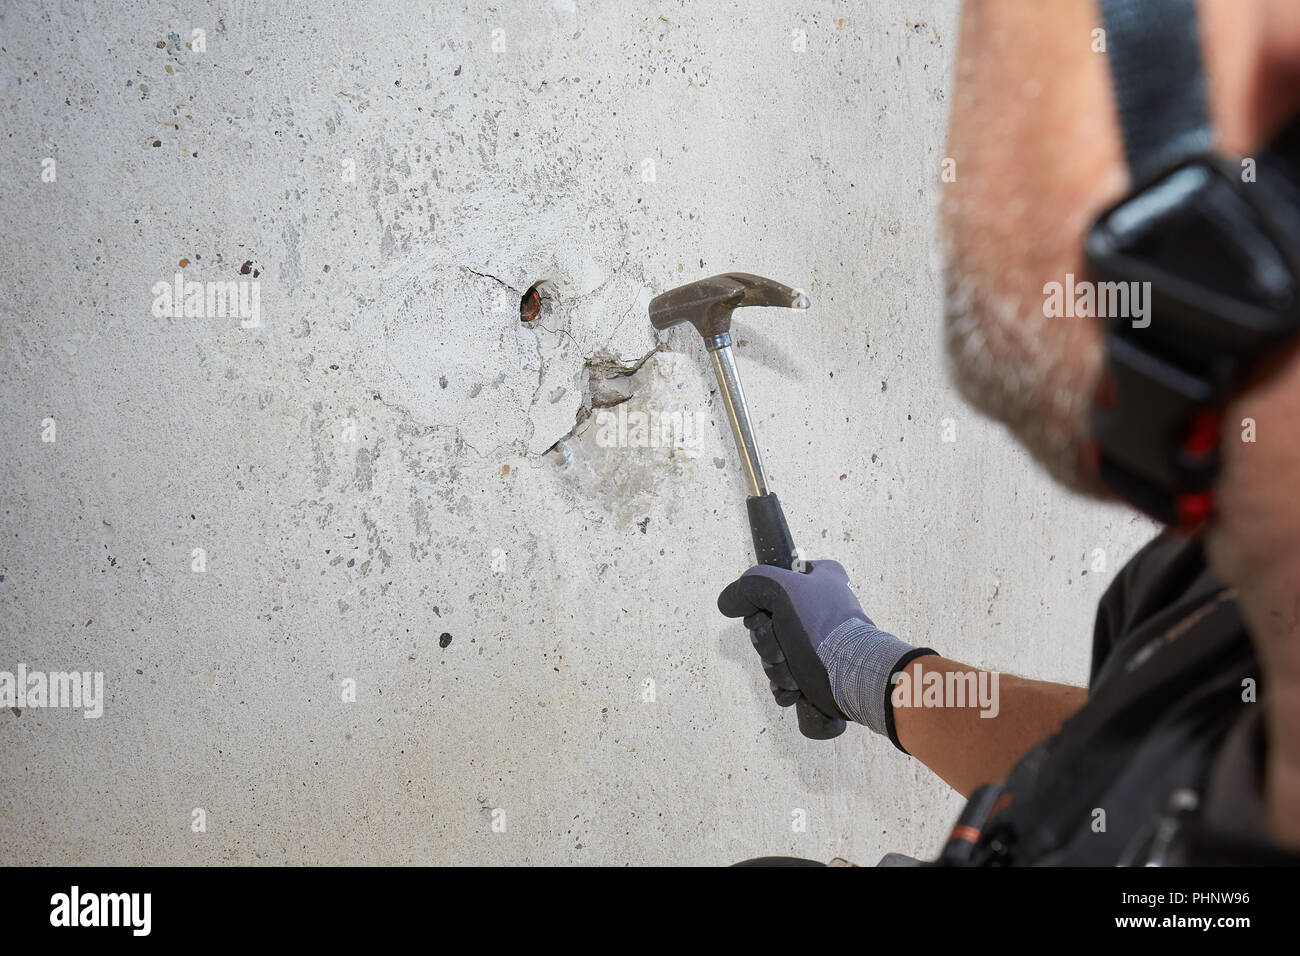 Lahnstein, Germany. 22nd Aug, 2018. 22.08.2018, Rhineland-Palatinate, Lahnstein: Bridge inspectors use a hammer to inspect the concrete surface of a pillar of the Lahn Valley Bridge on the B 42. Many German bridges date from the sixties and seventies, many are in need of rehabilitation today. (to dpa ''Bridge woodpeckers' hammer high up - regular bridge inspection' from 02.09.2018) Credit: Thomas Frey/dpa/Alamy Live News - Stock Image